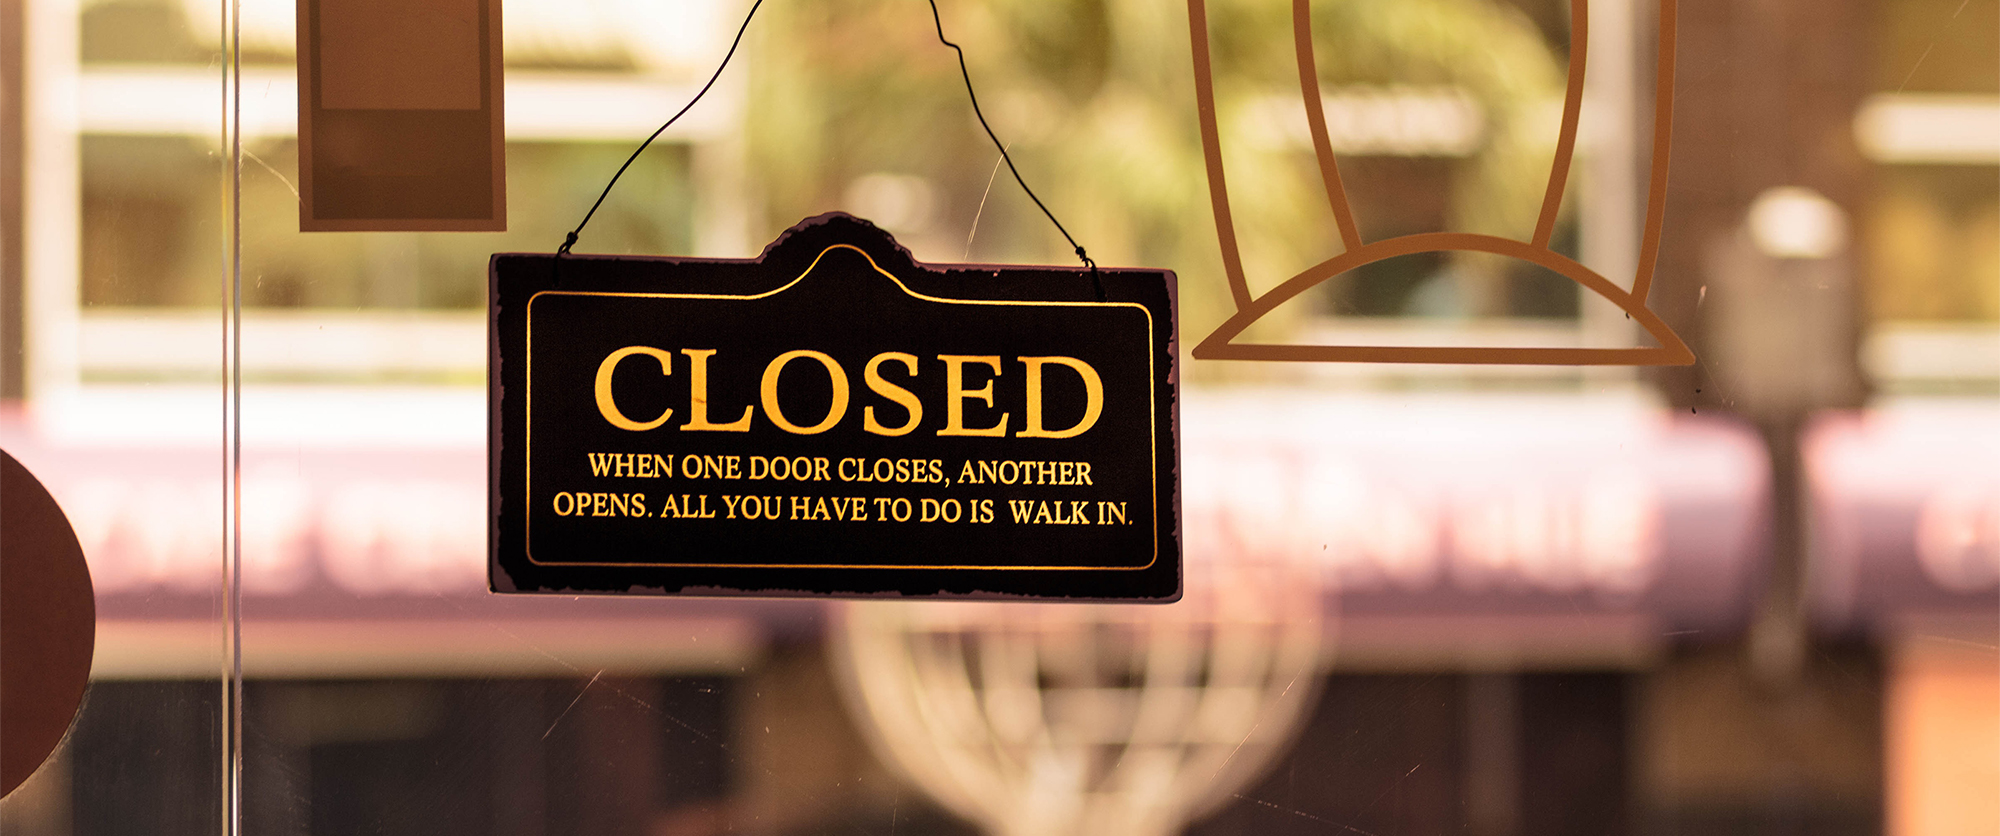 Closed: When one door closes, another opens. All you have to do is walk in.